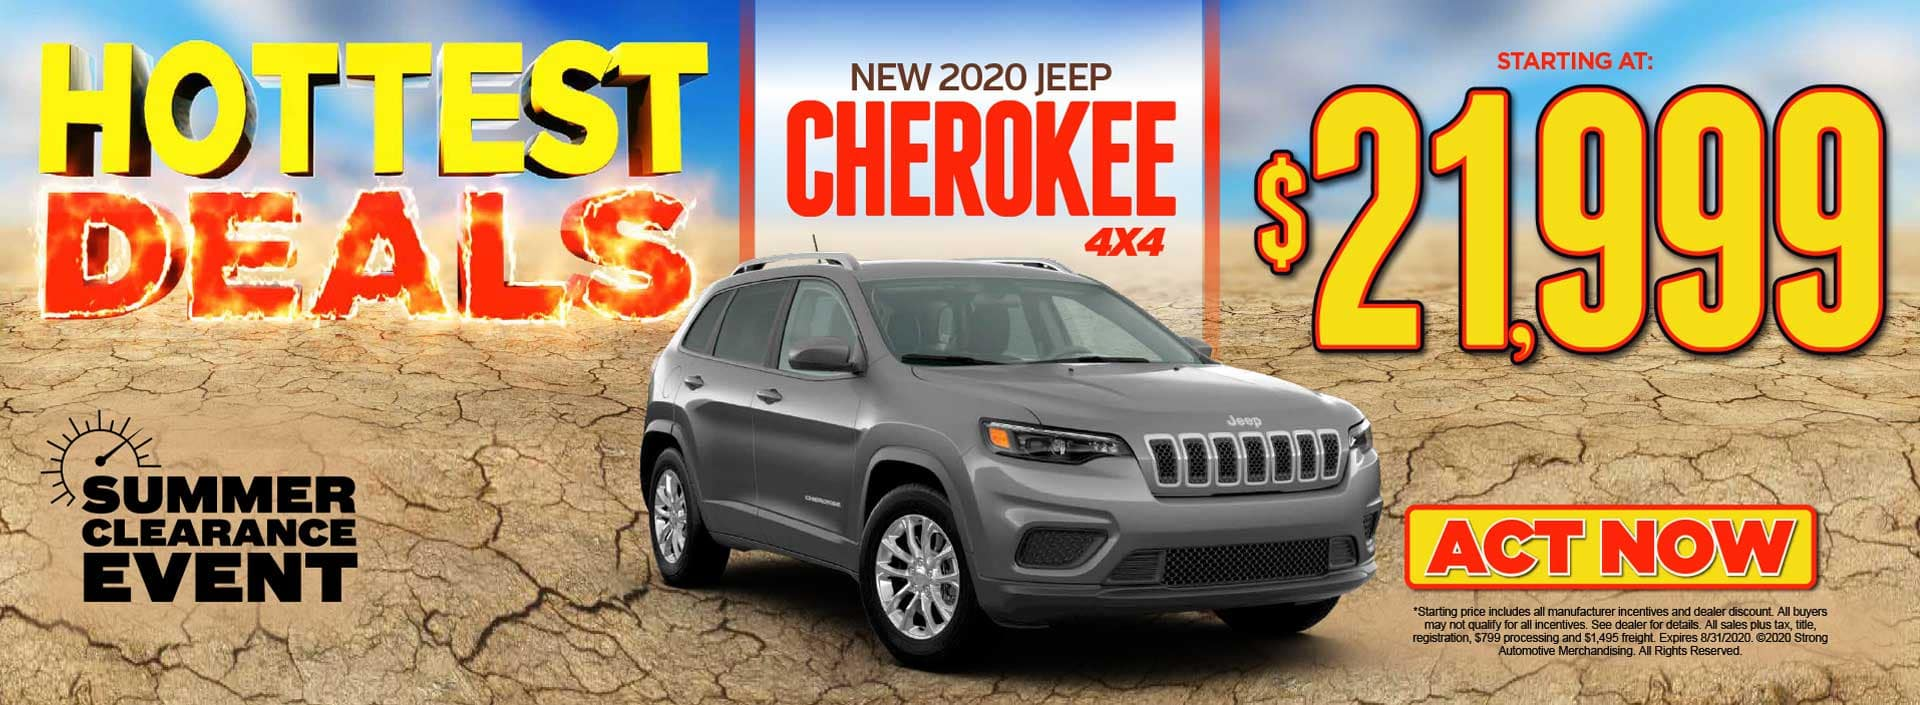 2020 JEEP CHEROKEE 4X4 – STARTING AT $21,999 ACT NOW